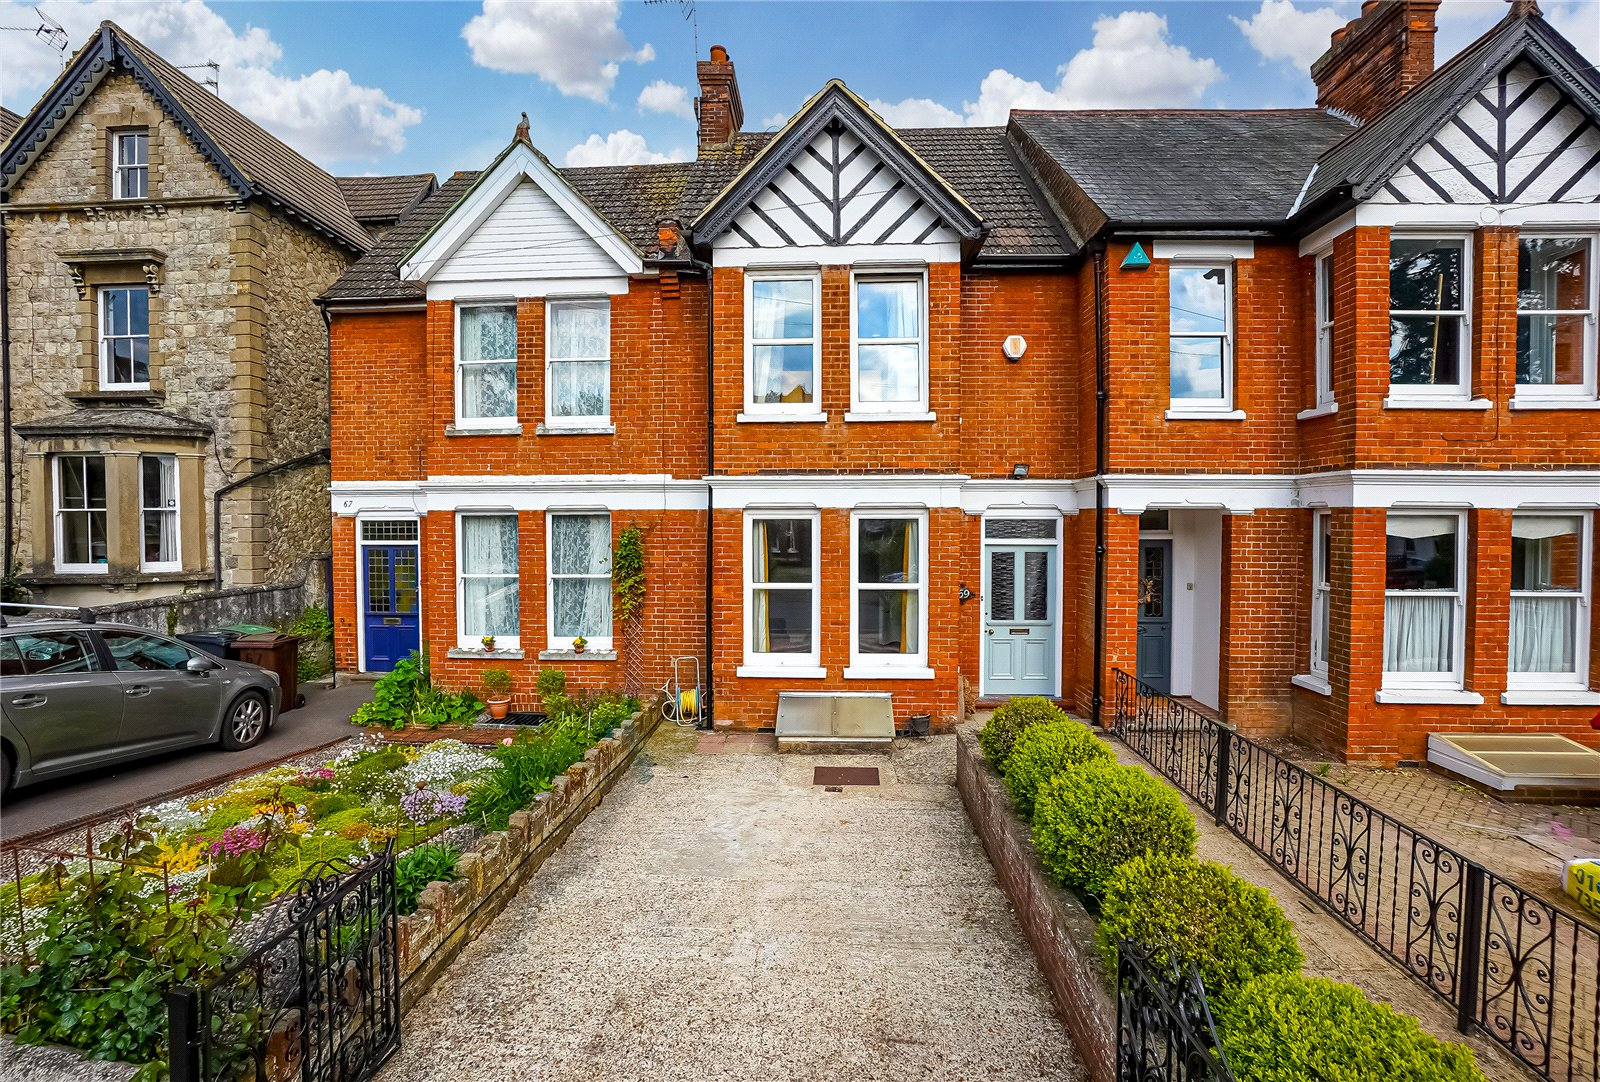 4 bed house for sale in Bower Mount Road, Maidstone 0